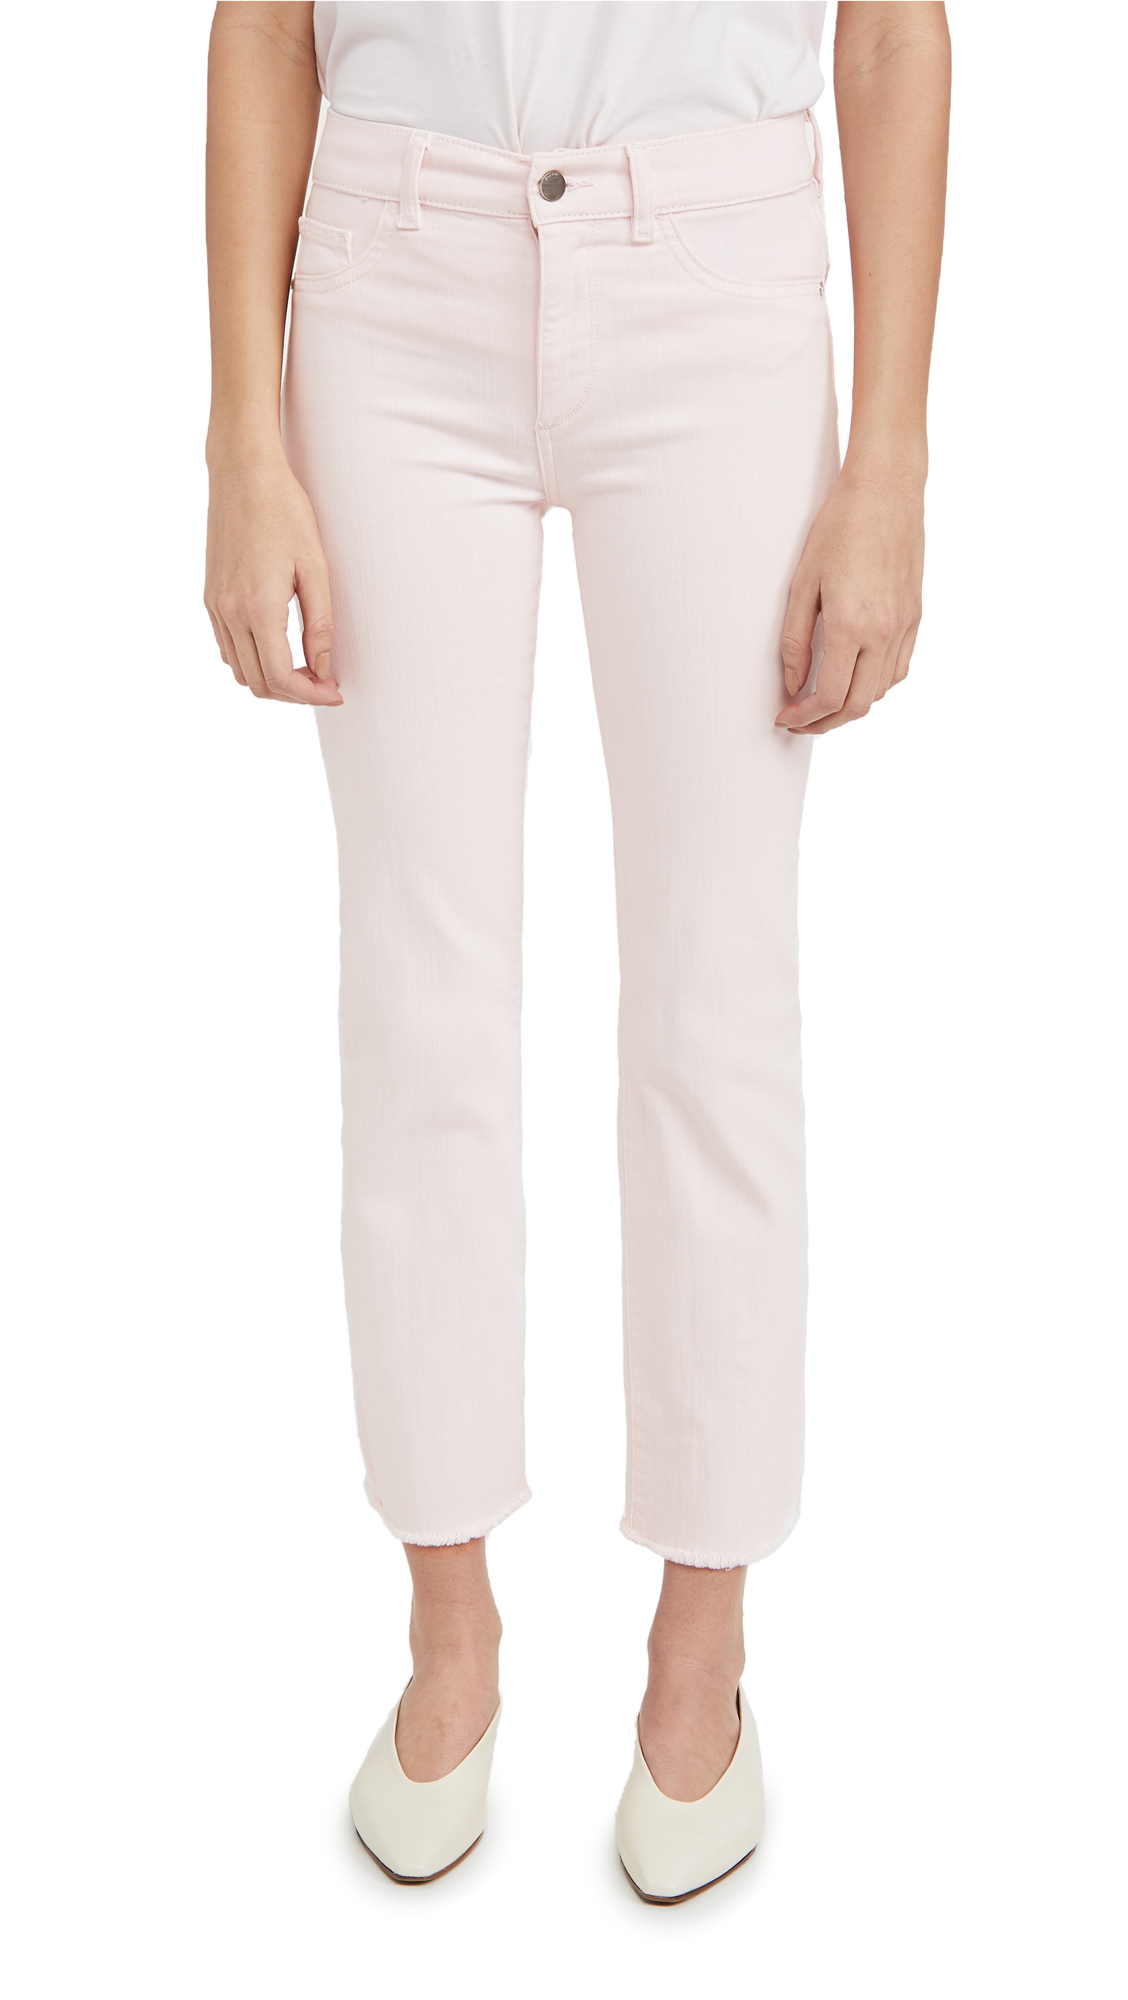 Dl 1961 MARA MID RISE INSTASCULPT ANKLE STRAIGHT JEANS